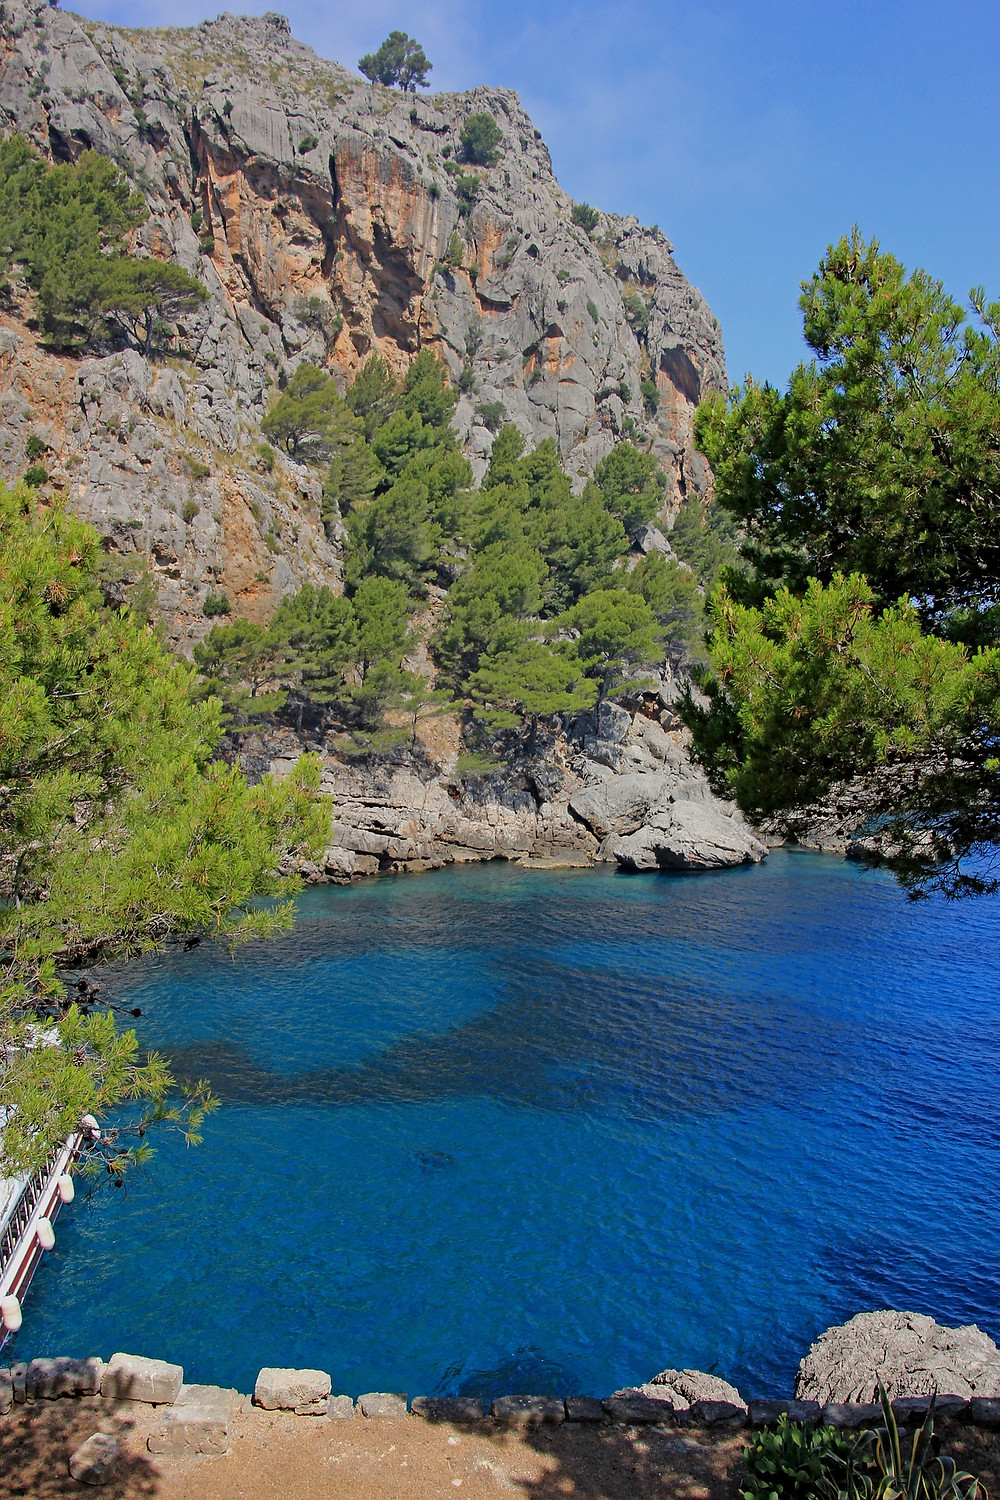 A mediterranean bay in Mallorca, showing rocky cliffs, lush green pine trees and see in a deep, rich blue.